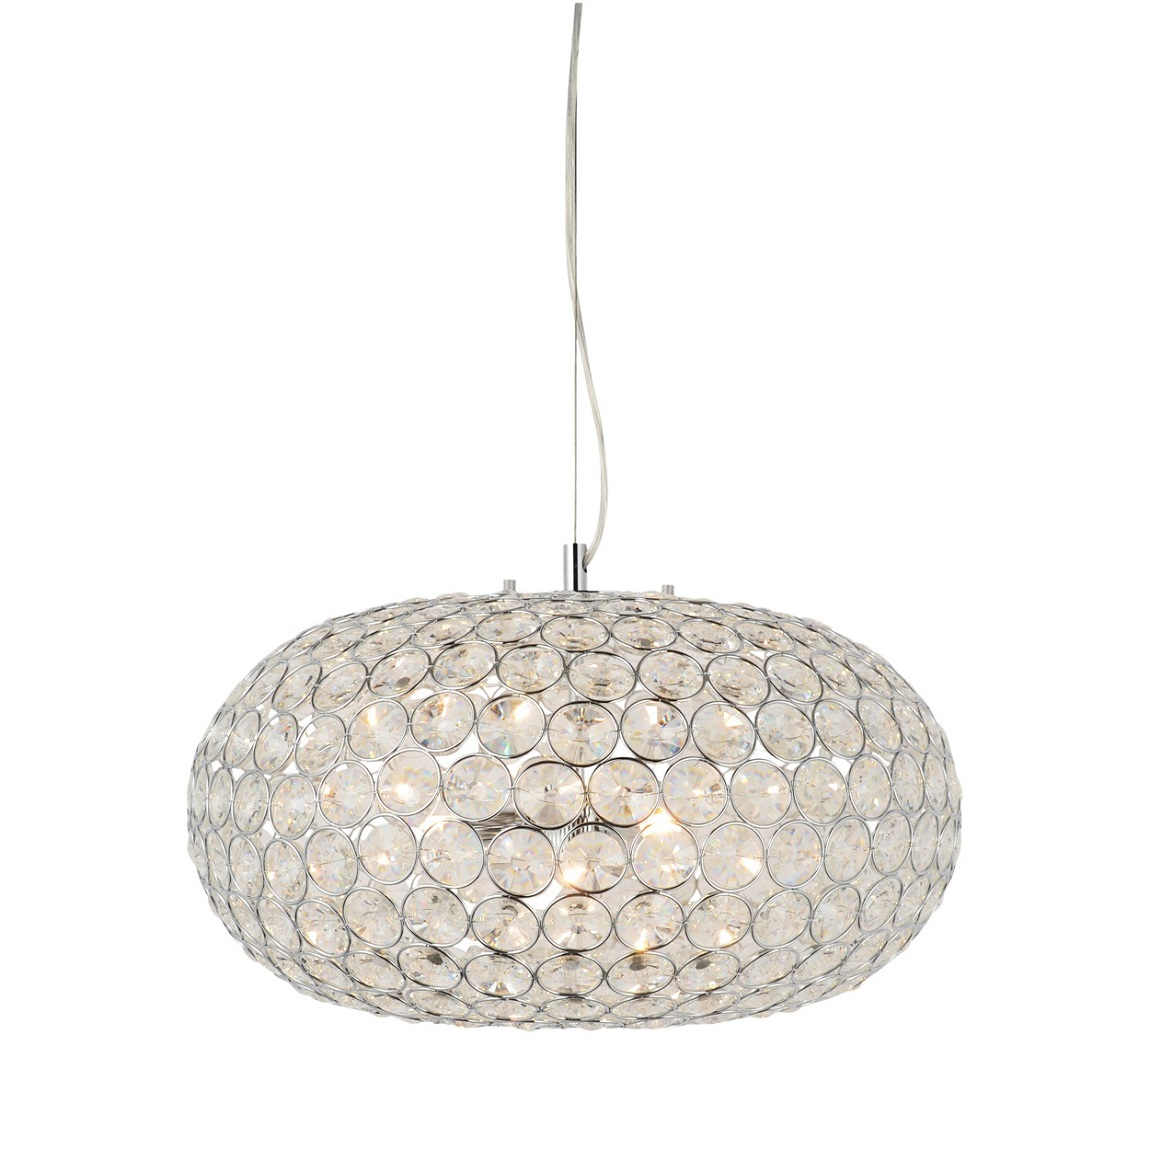 Debenhams Home Collection 'Ava' Pendant Ceiling Light